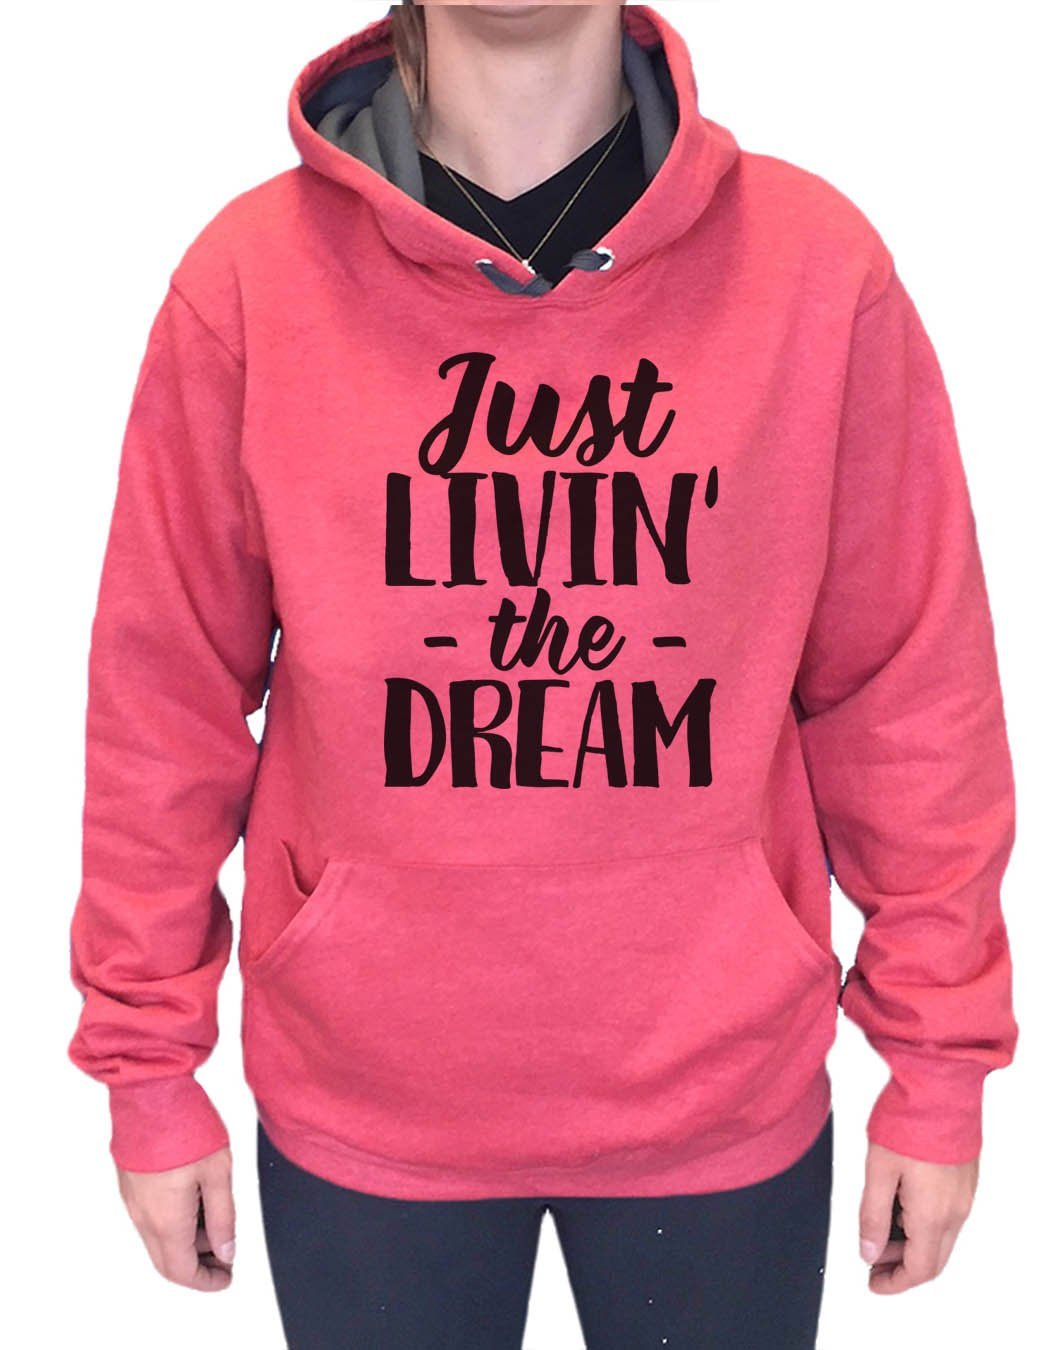 UNISEX HOODIE - Just Livin' The Dream - FUNNY MENS AND WOMENS HOODED SWEATSHIRTS - 2177 Funny Shirt Small / Cranberry Red